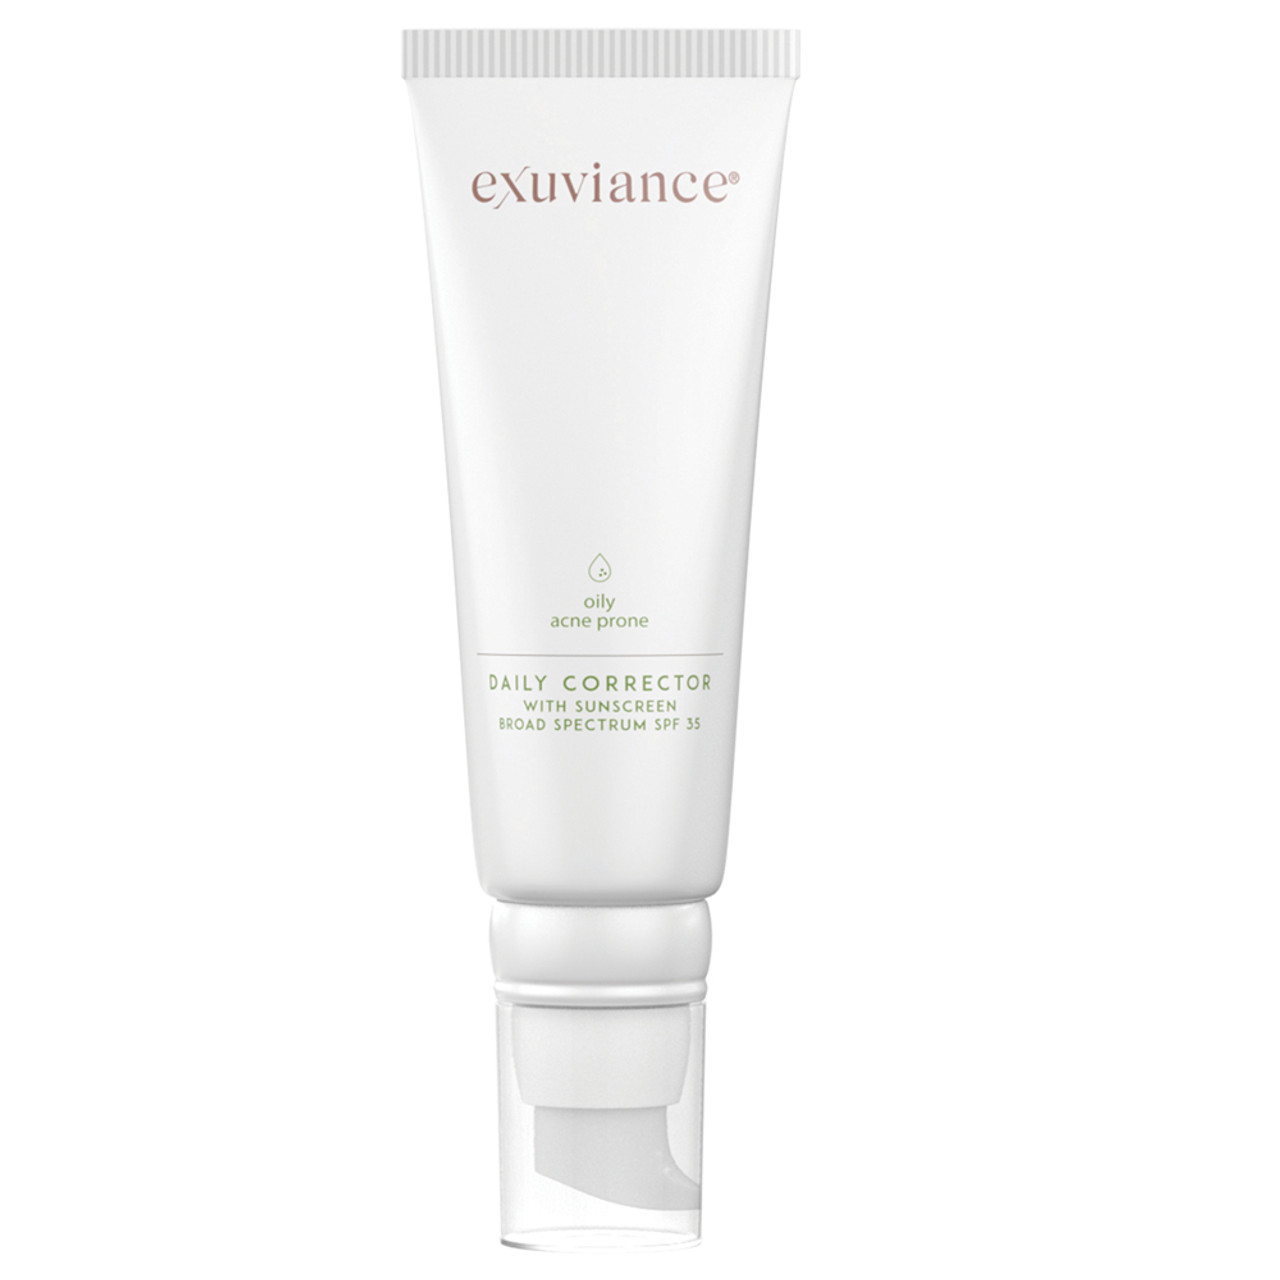 Exuviance Daily Corrector with Sunscreen SPF 35